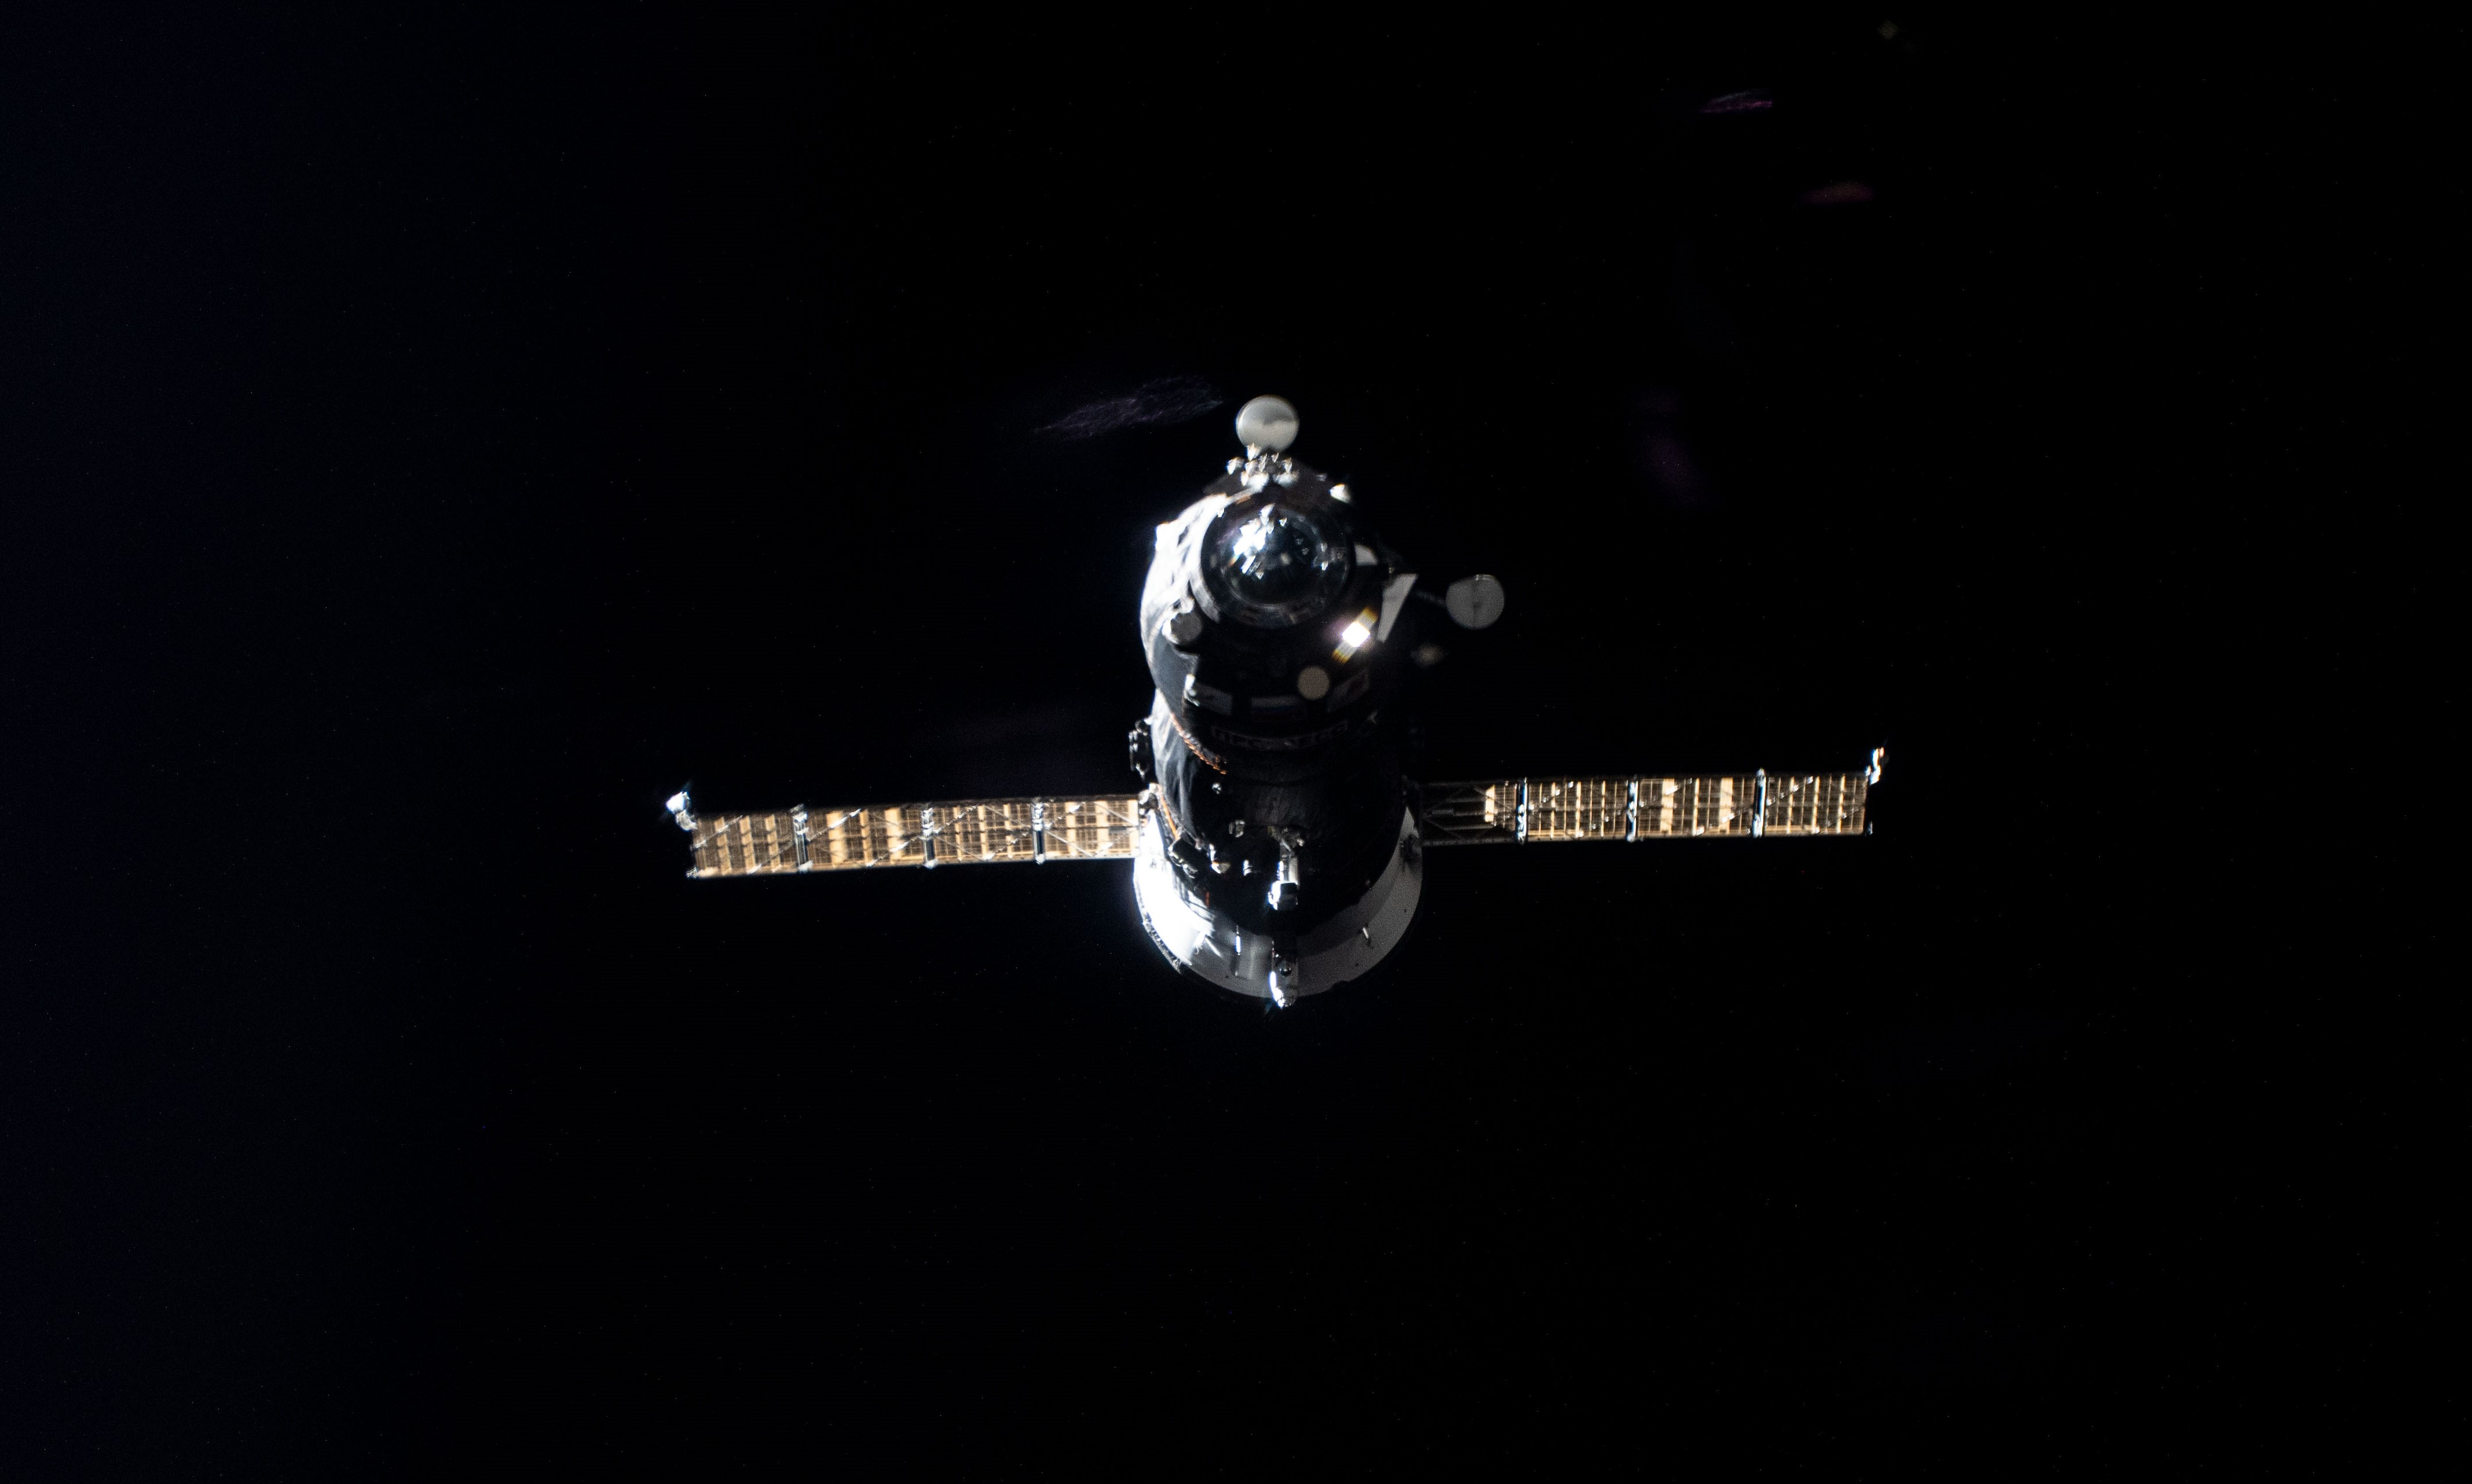 NASA to Air Launch, Docking of Roscosmos Cargo Ship to Space Station